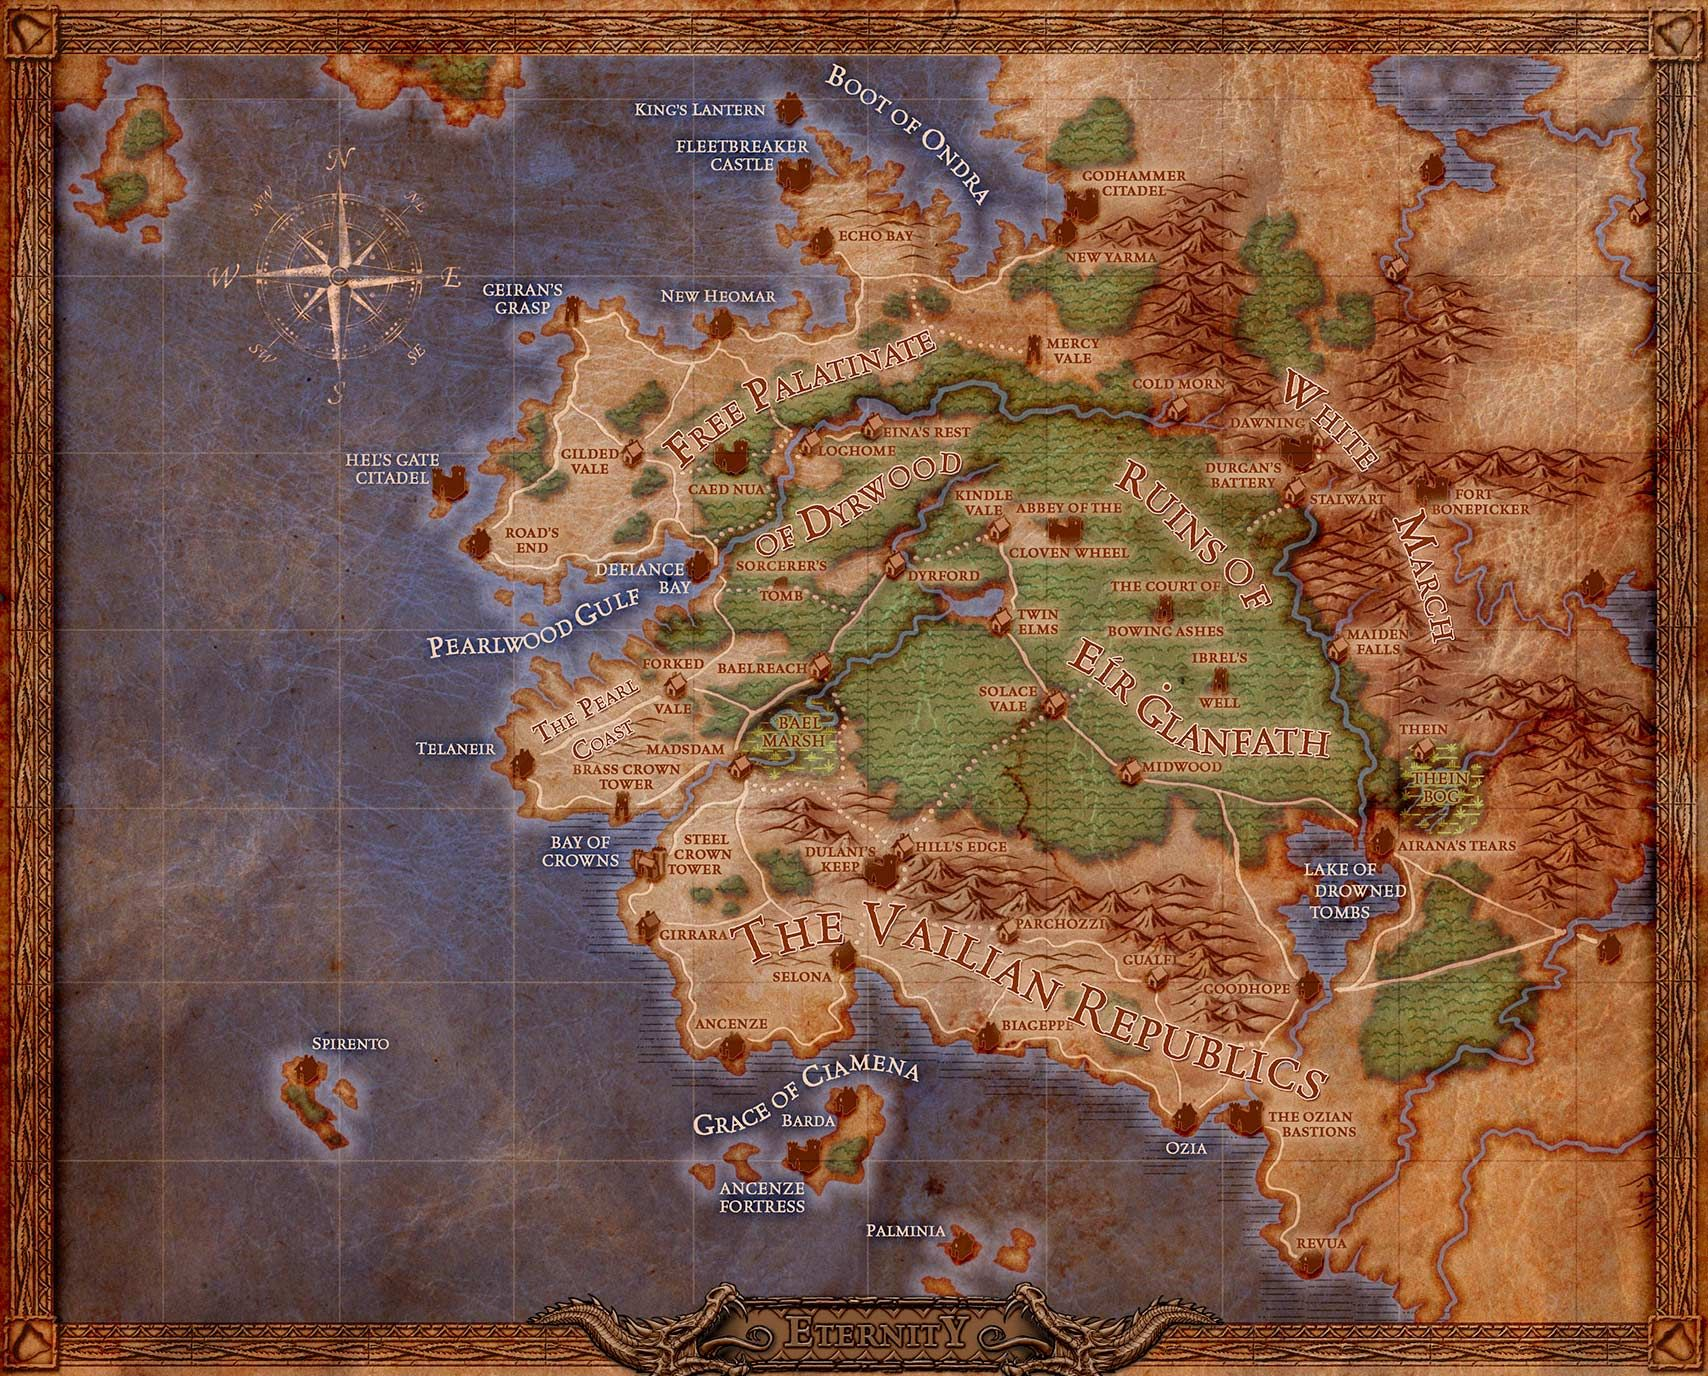 Mapa Pillars Of Eternity.Pillars Of Eternity World Map Pillars Of Eternity Fantasy